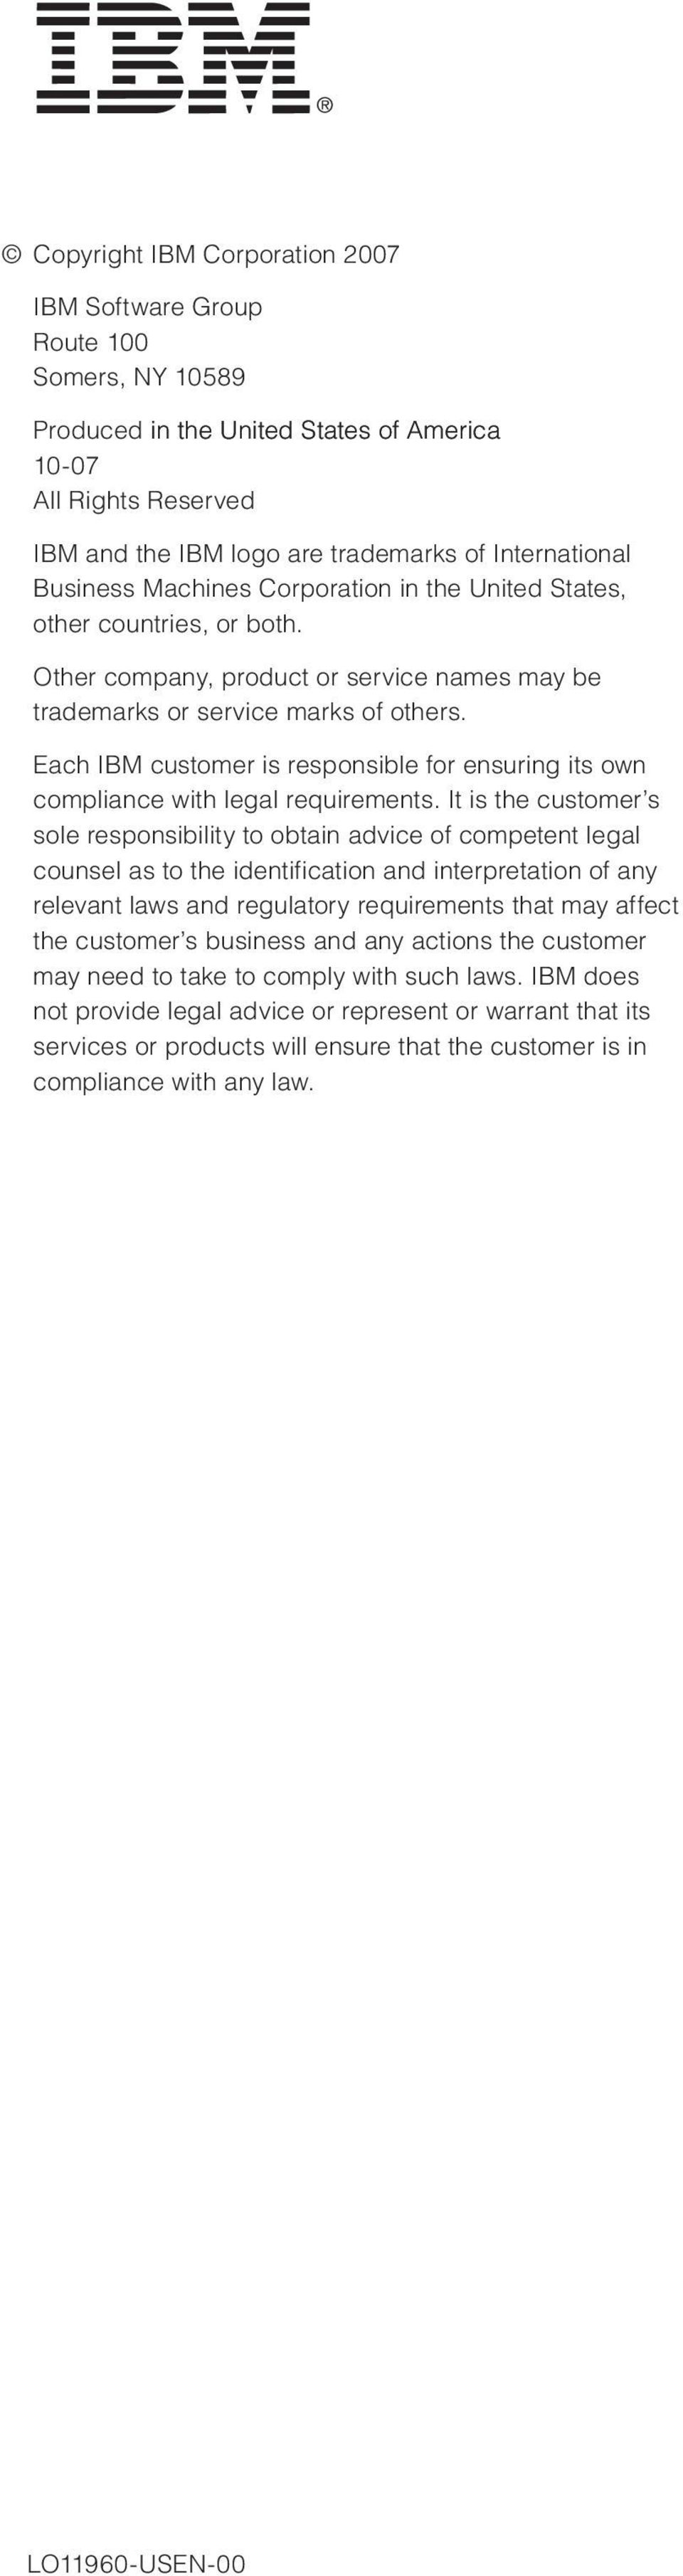 Each IBM customer is responsible for ensuring its own compliance with legal requirements.